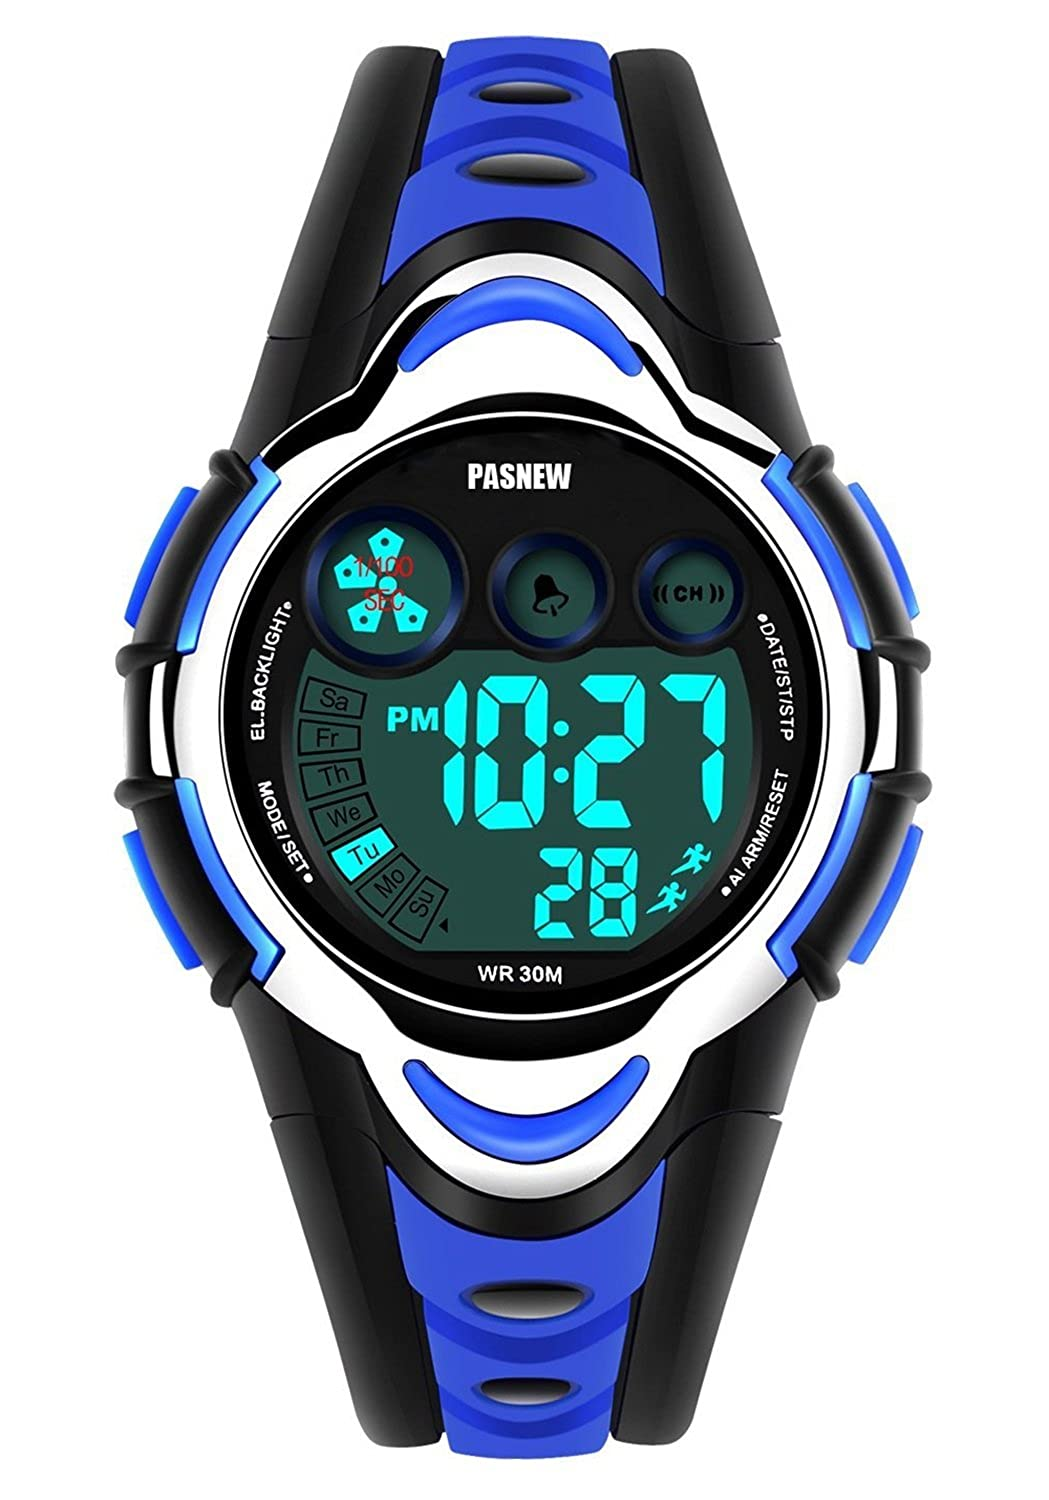 ed0c3851f Amazon.com  Waterproof Boys Girls Kids Childrens Digital Sports Watches for  5-12 Years Old (blue)  New Brand Mall  Clothing